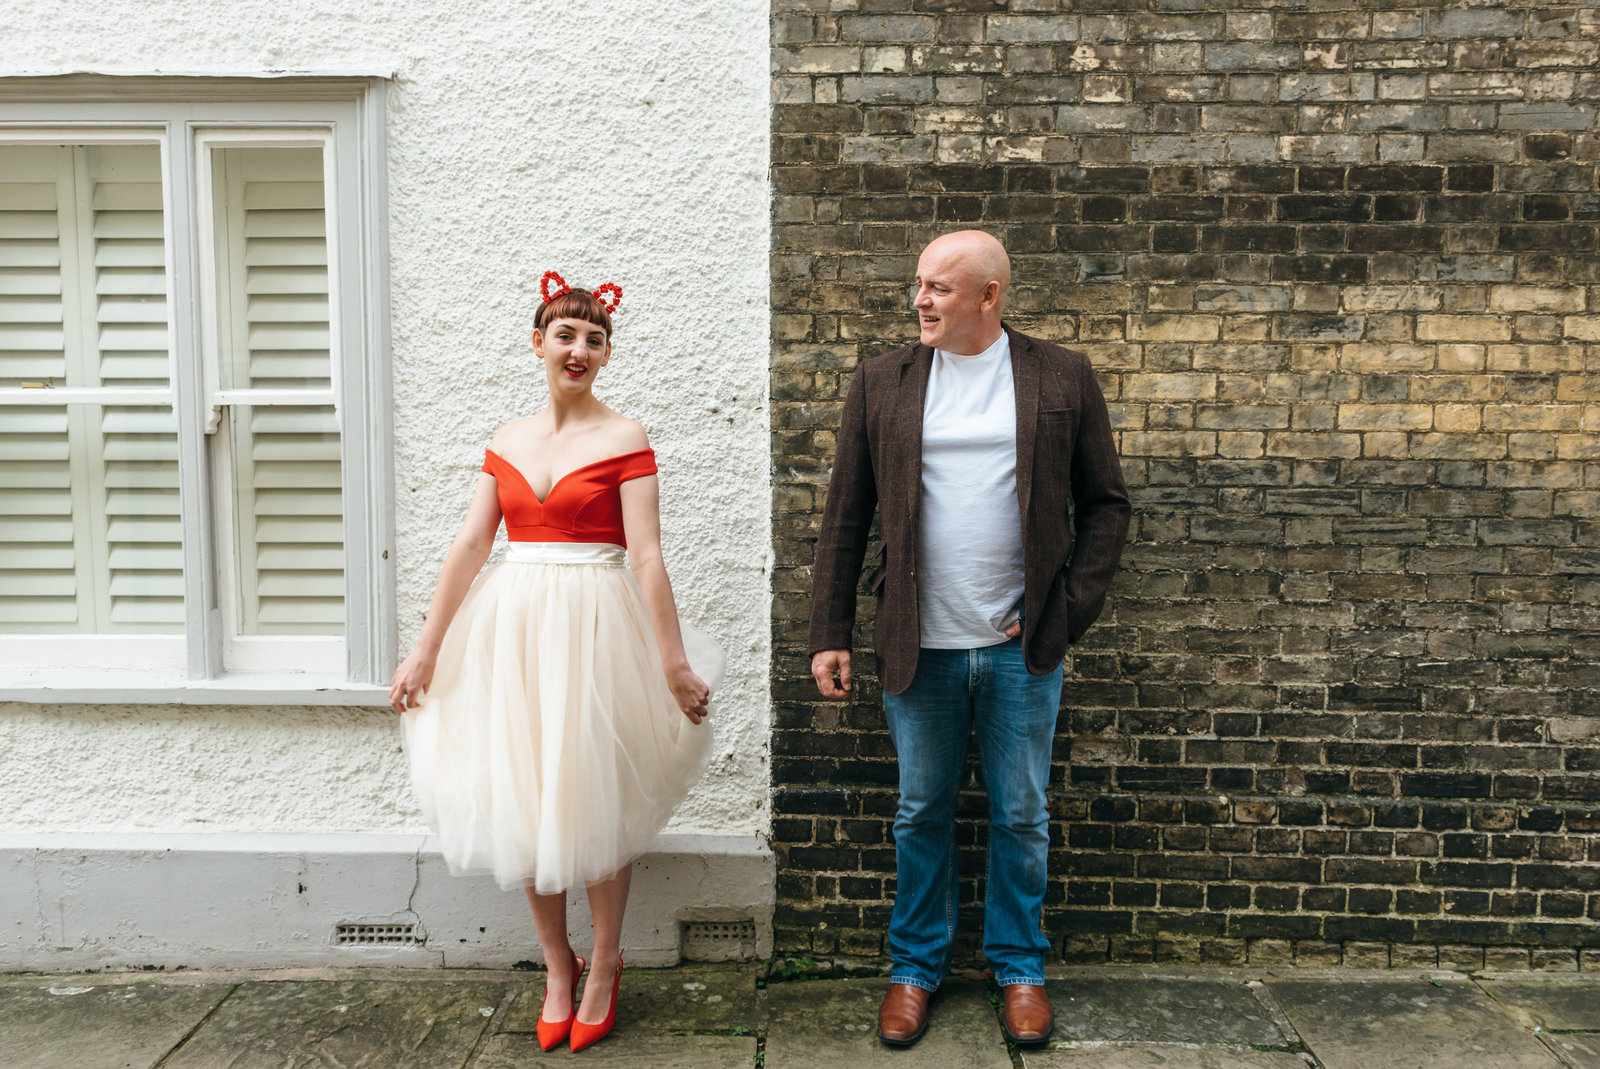 Lisa and Neil stand in front of a brick wall in Norwich. Lisa is holding her skirt and looking at the camera and Neil is looking at her and smiling.